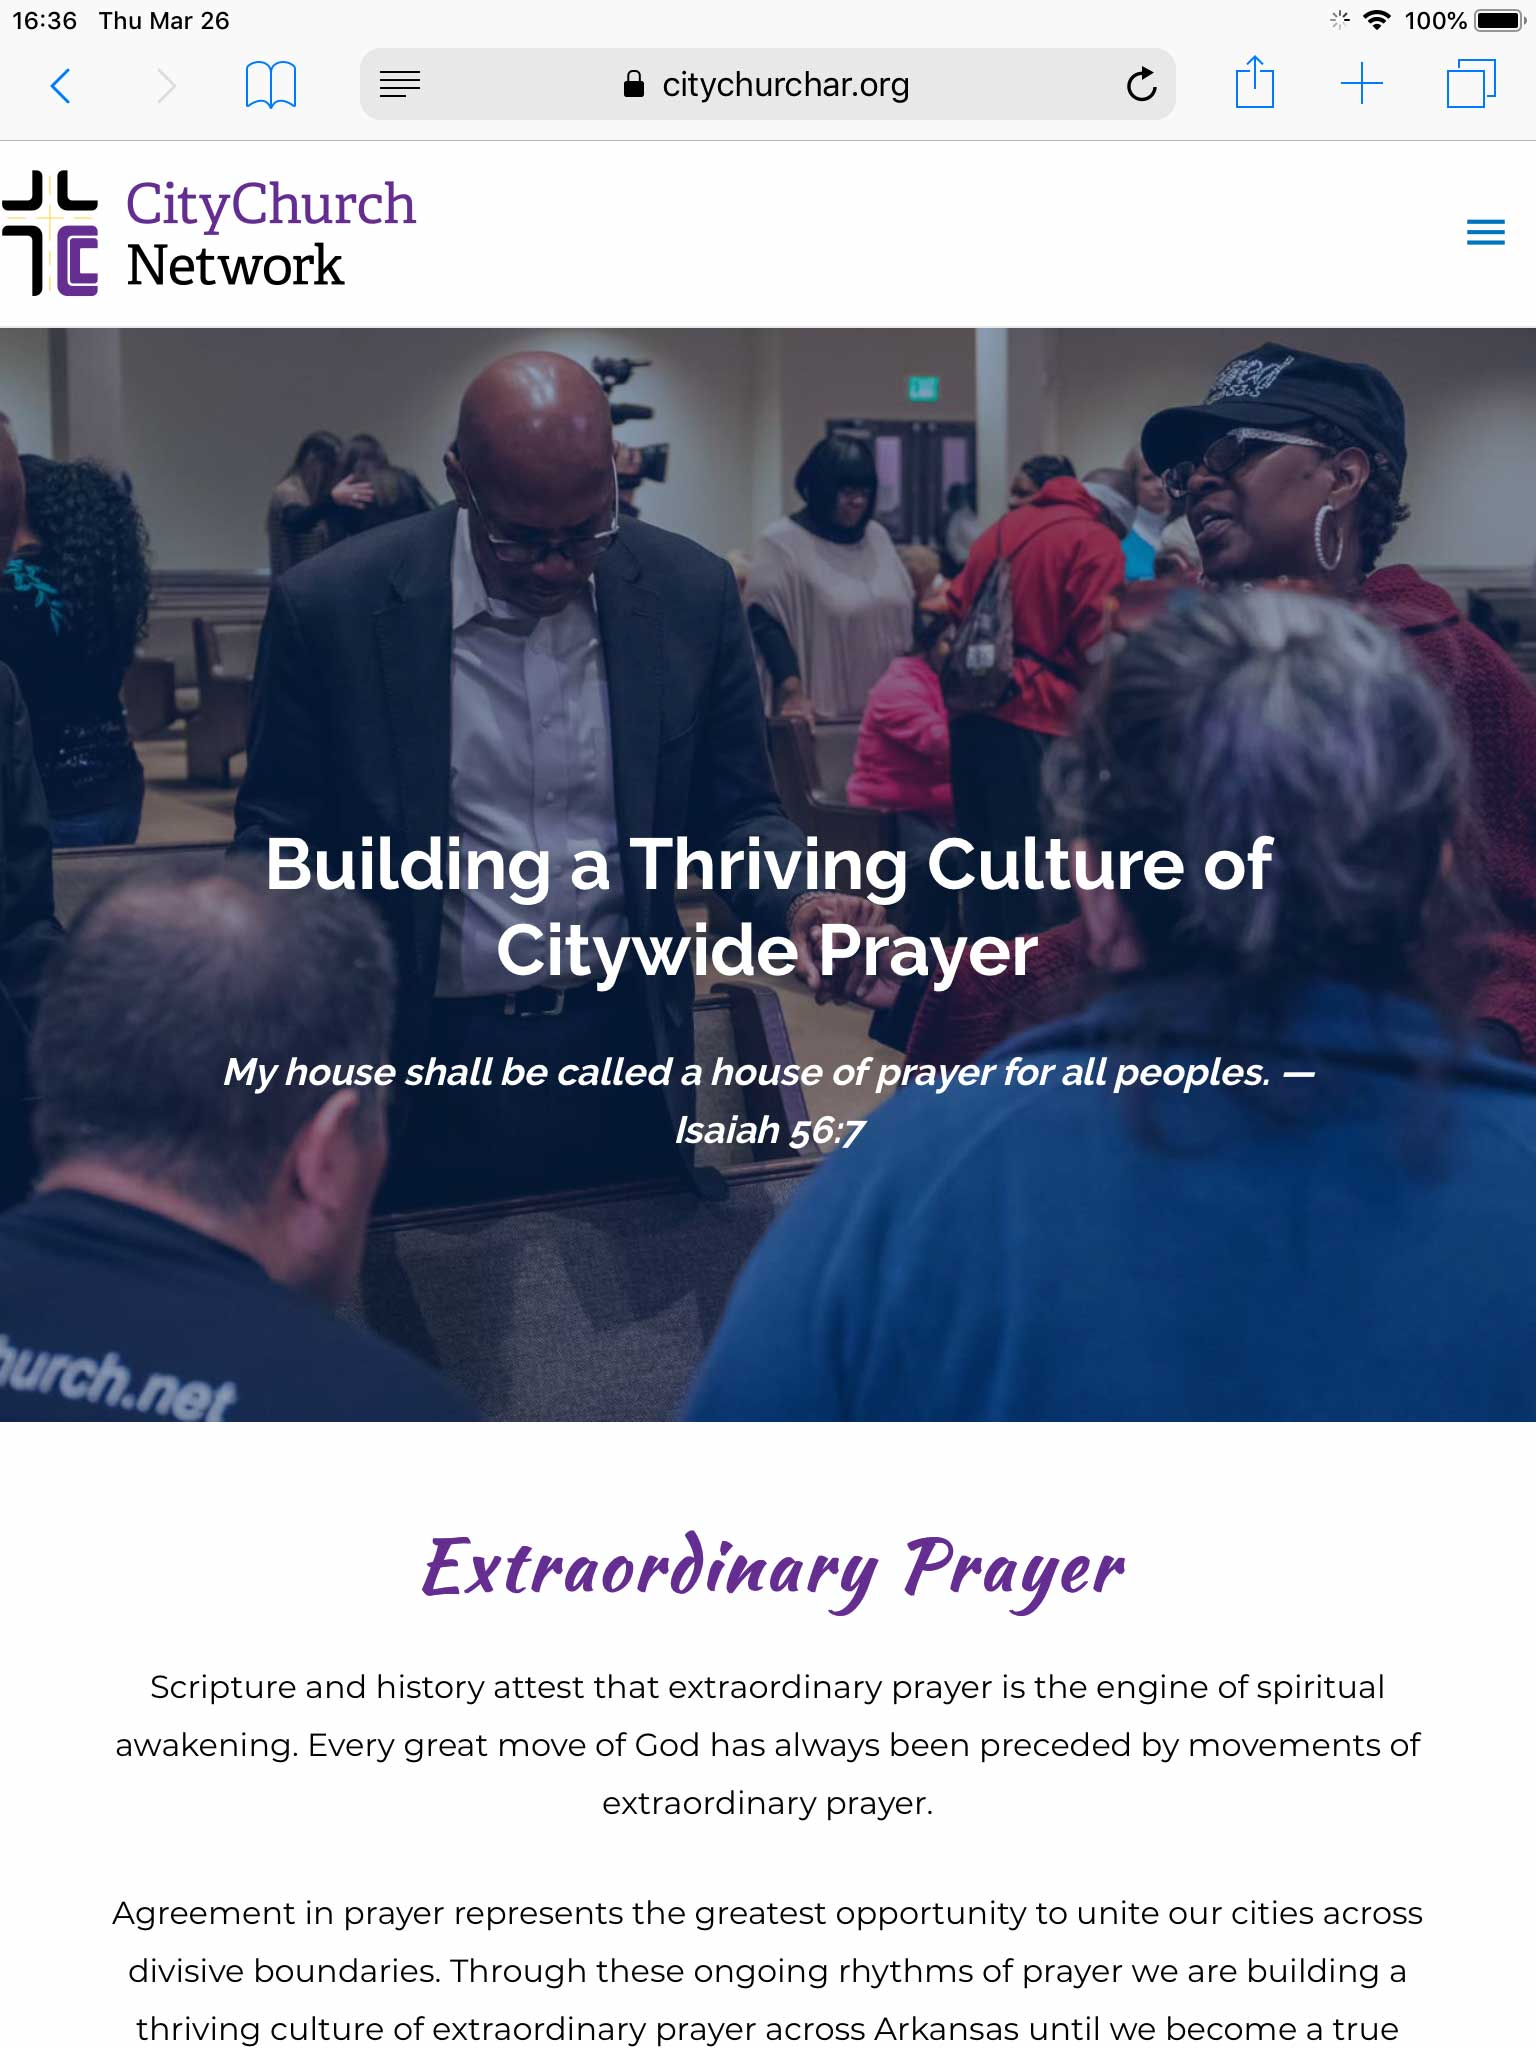 tablet view of CityChurch Network website